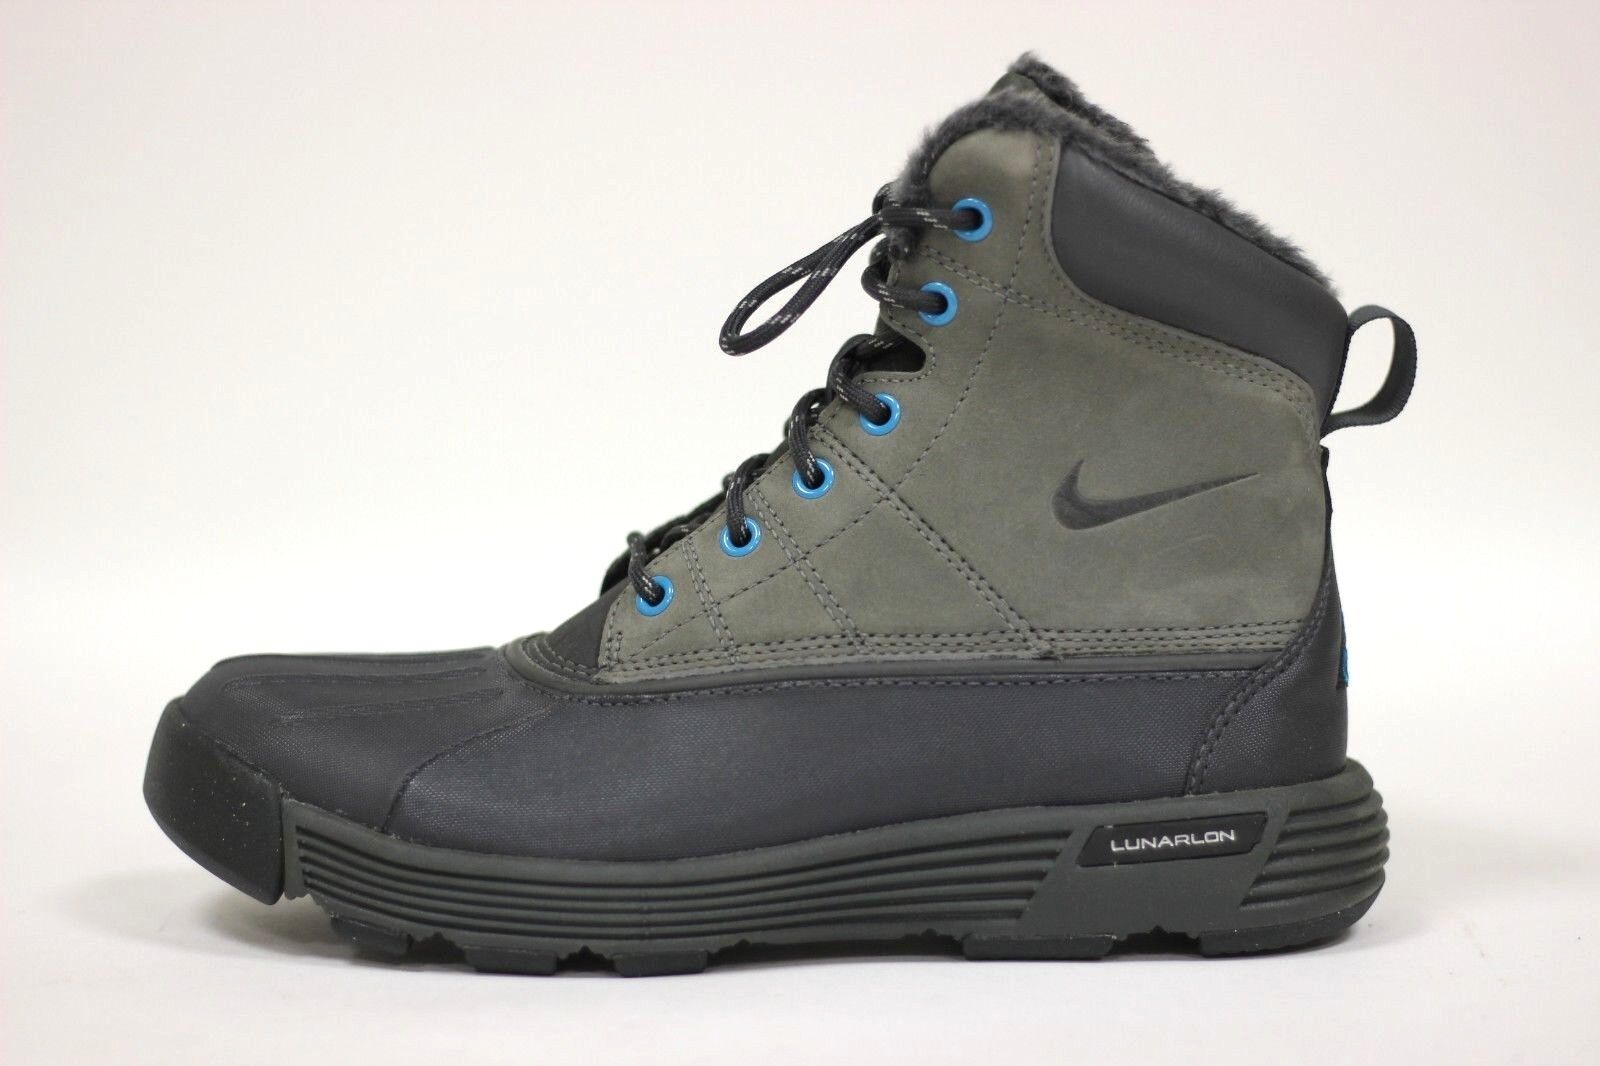 5862ab6c Nike Women's Lunarstorm Boot NEW AUTHENTIC Anthracite/Grey/Turquoise 417724-004  фото